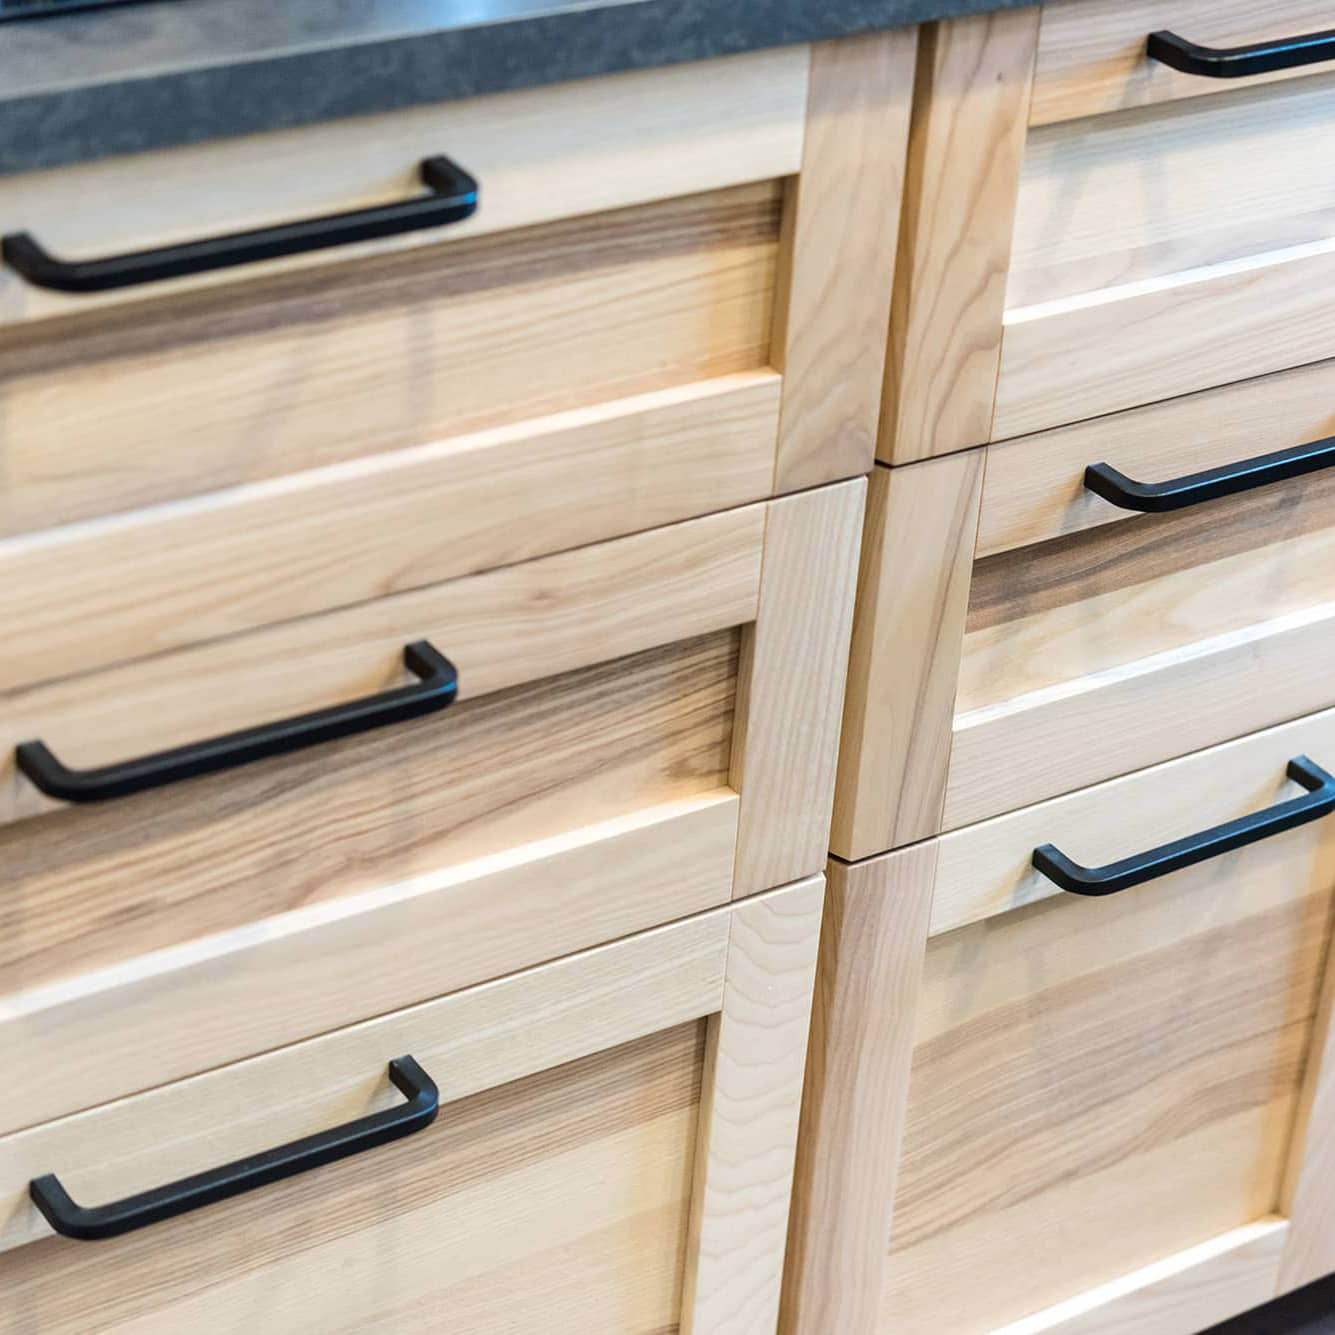 Drawer Fronts with handles